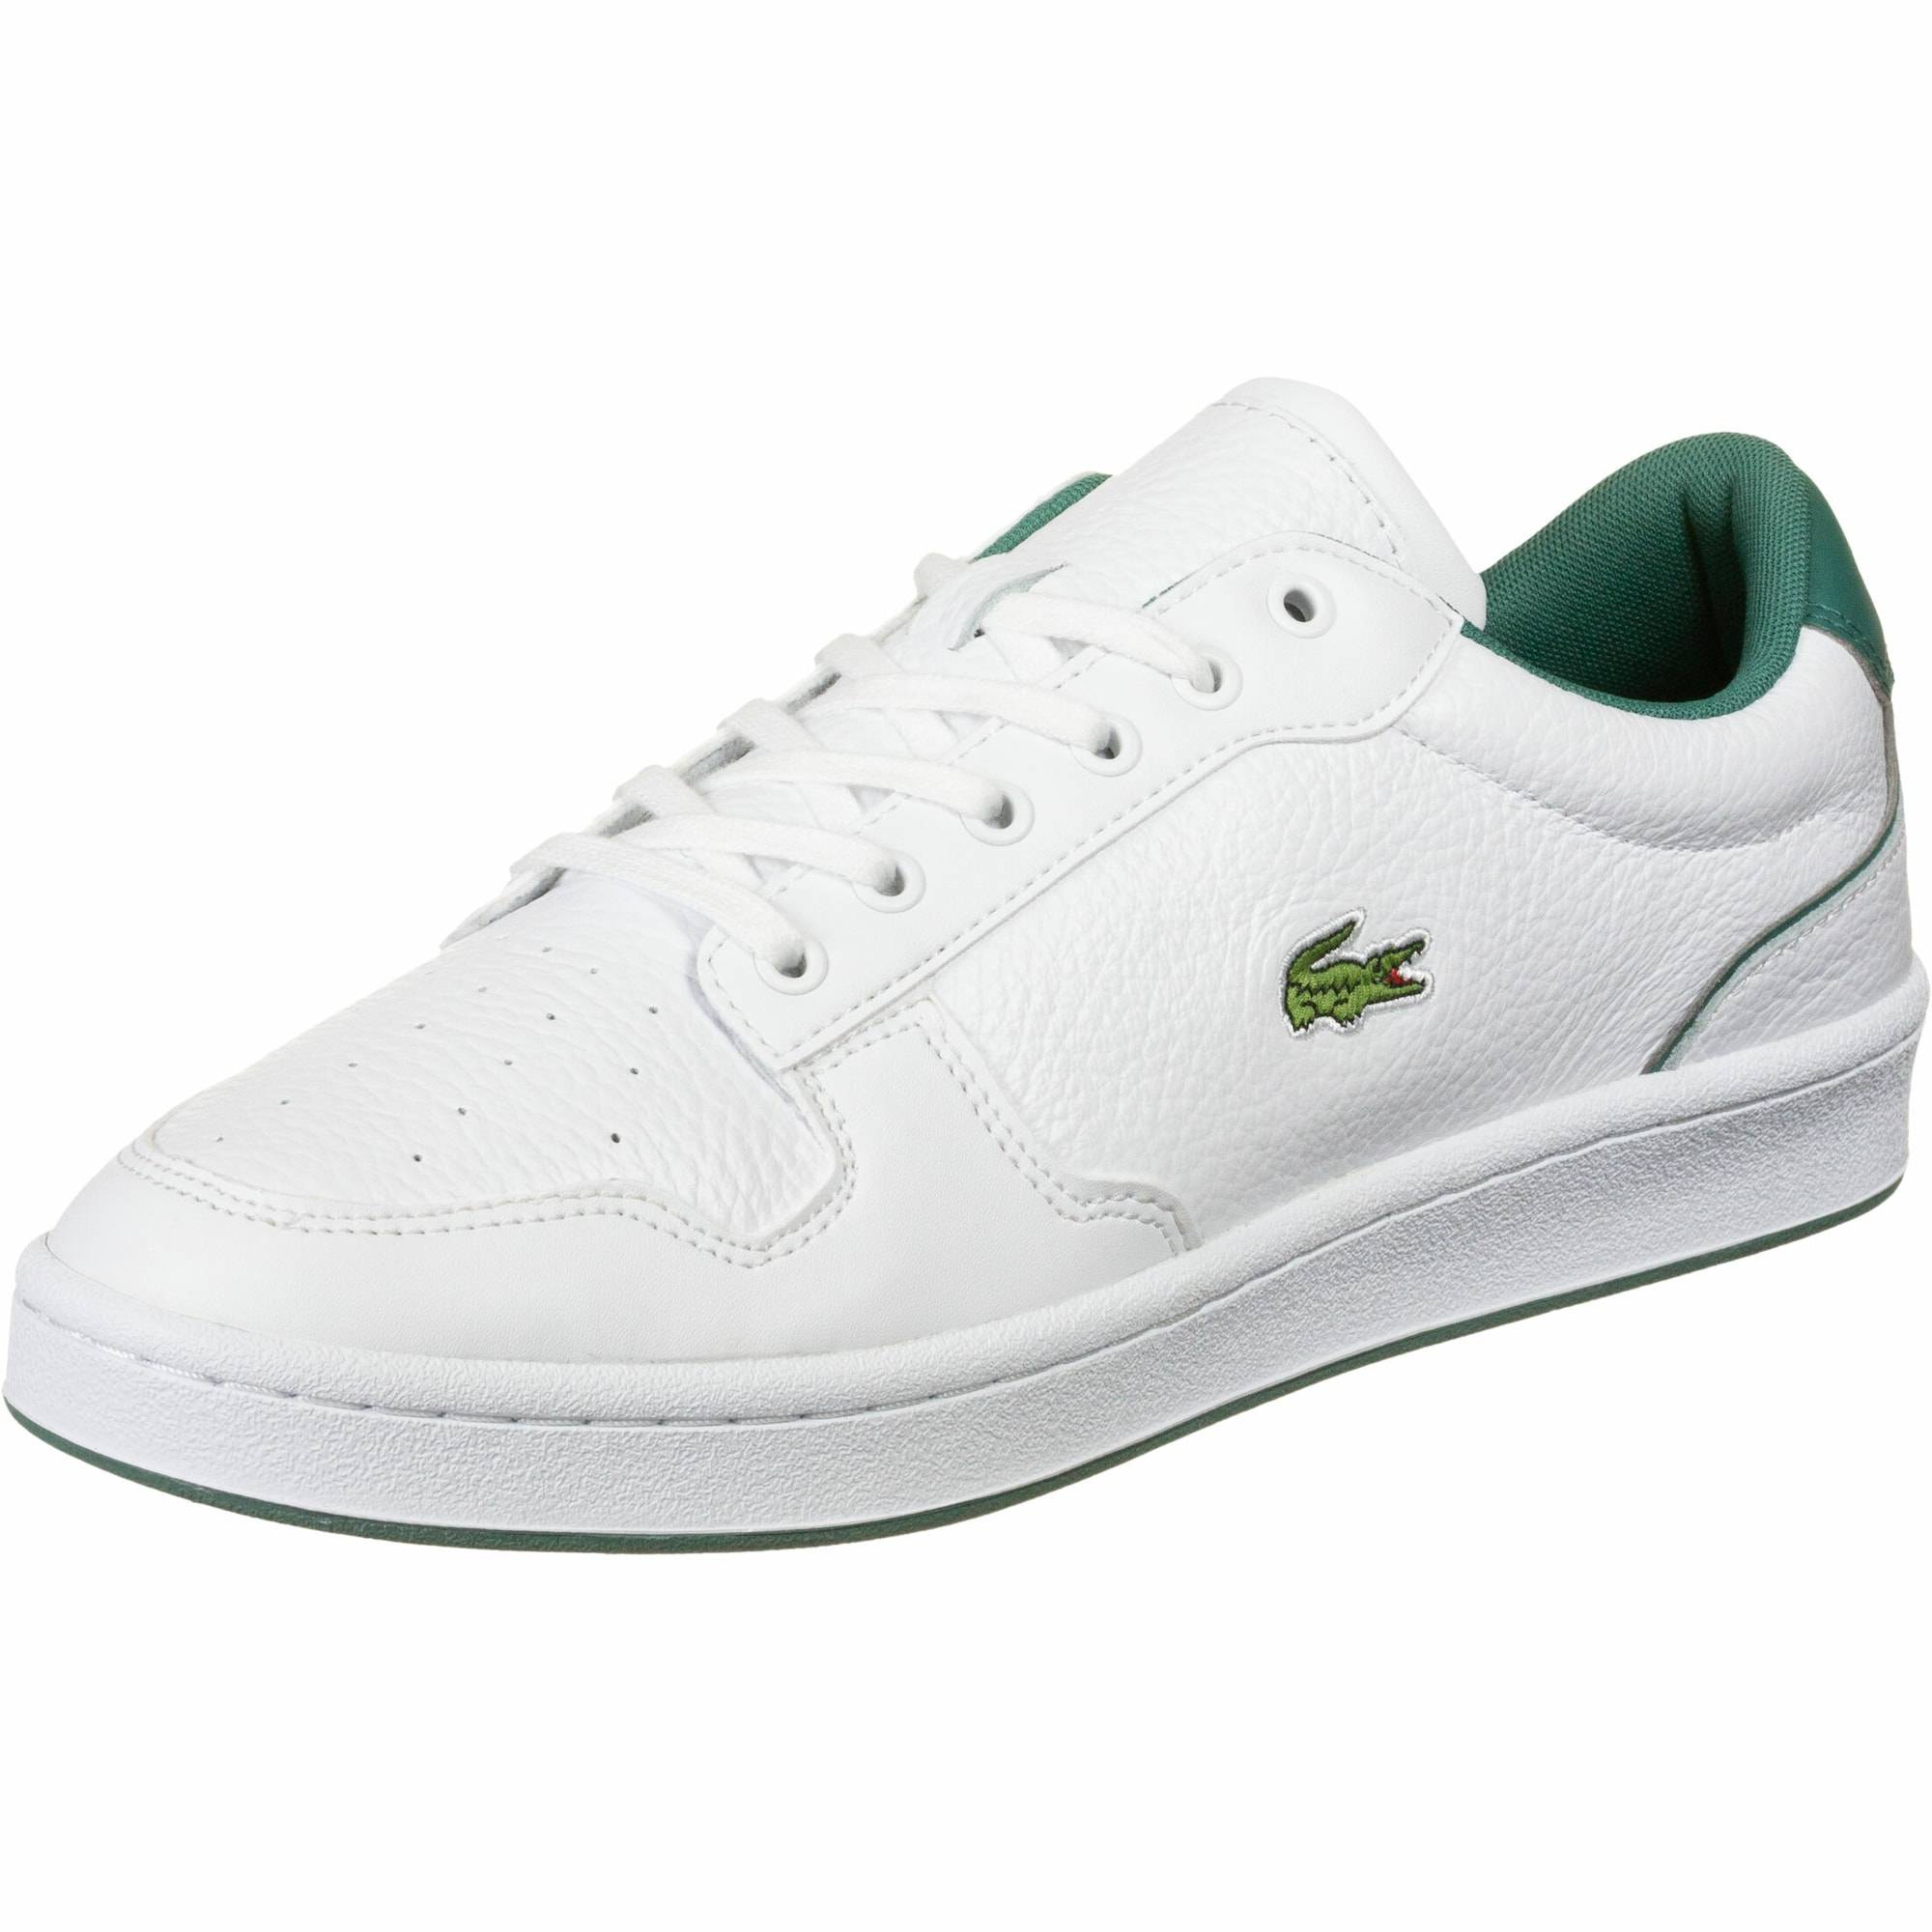 LACOSTE Baskets basses 'Masters Cup 120'  - Blanc - Taille: 47 - male